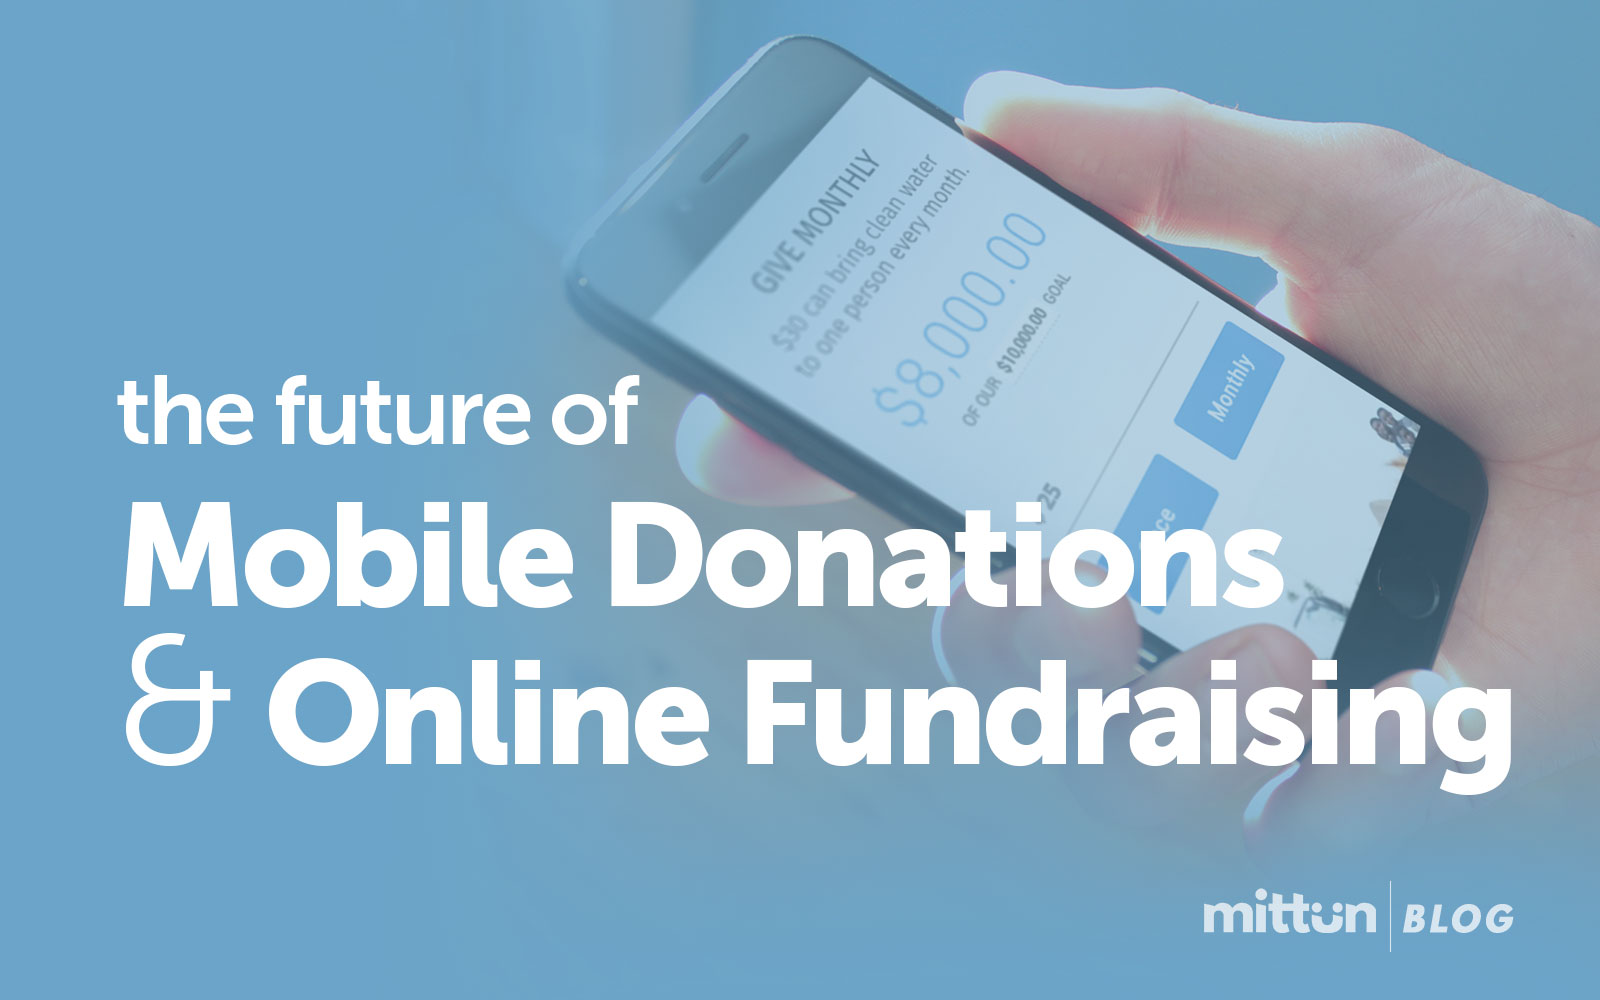 The Future of Mobile Donations & Online Fundraising by Mittun